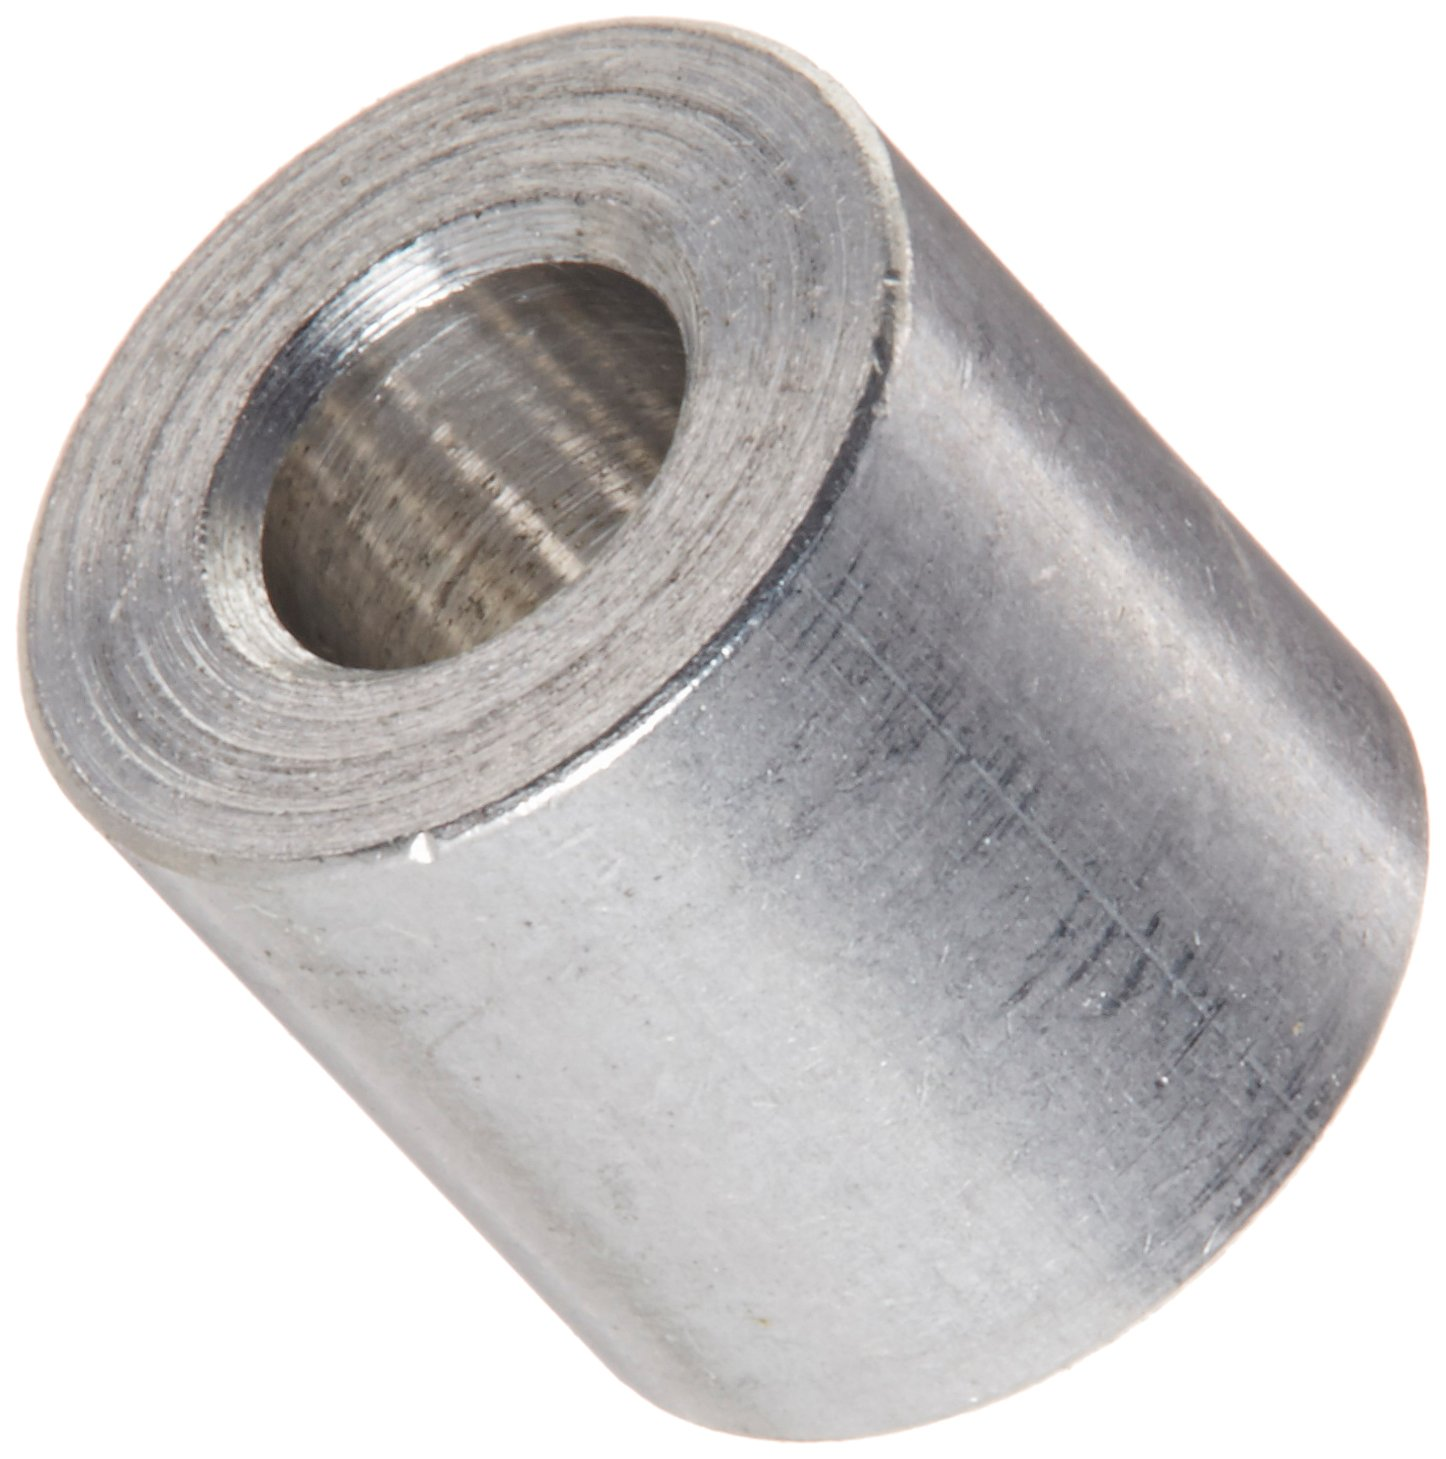 Pack of 25 0.115 ID 5//16 Length #4 Screw Size Round Spacer Aluminum Plain Finish 1//4 OD